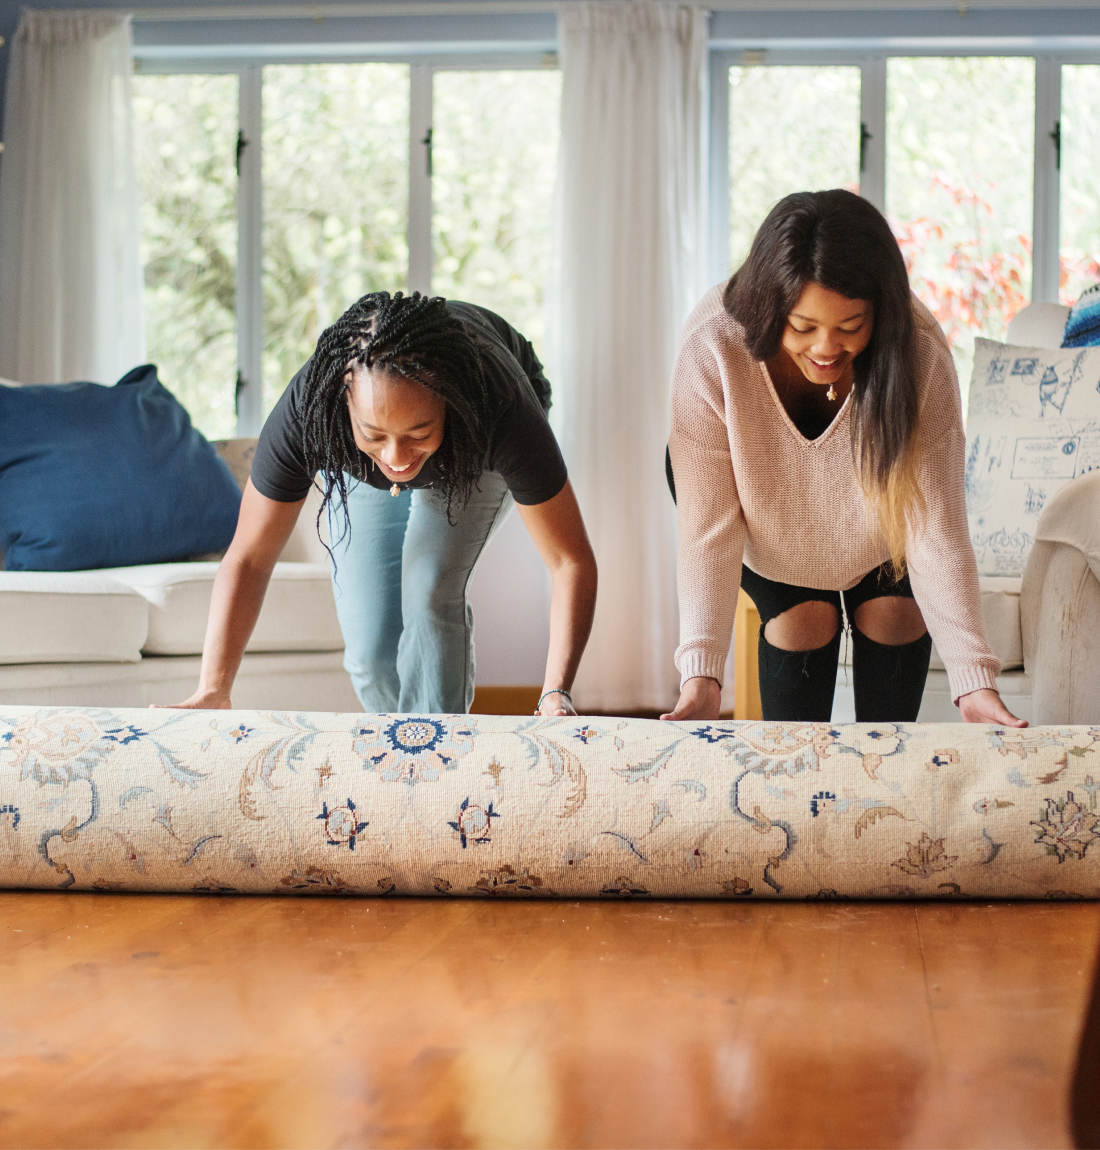 Two women rolling out an area rug